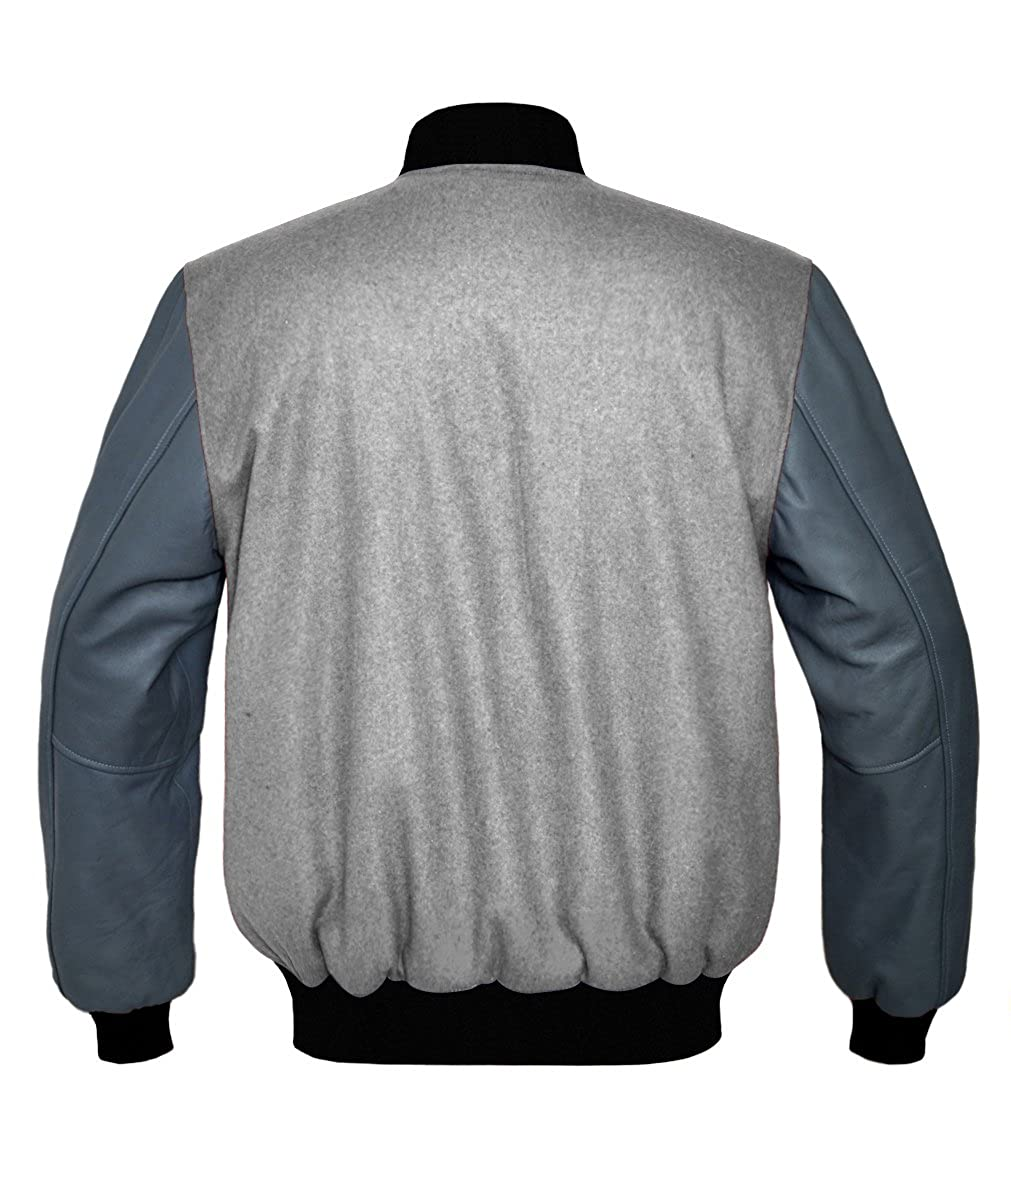 luvsecretlingerie Original American Varsity Real Grey Leather Letterman College Baseball Kid Wool Jackets #G-B-G